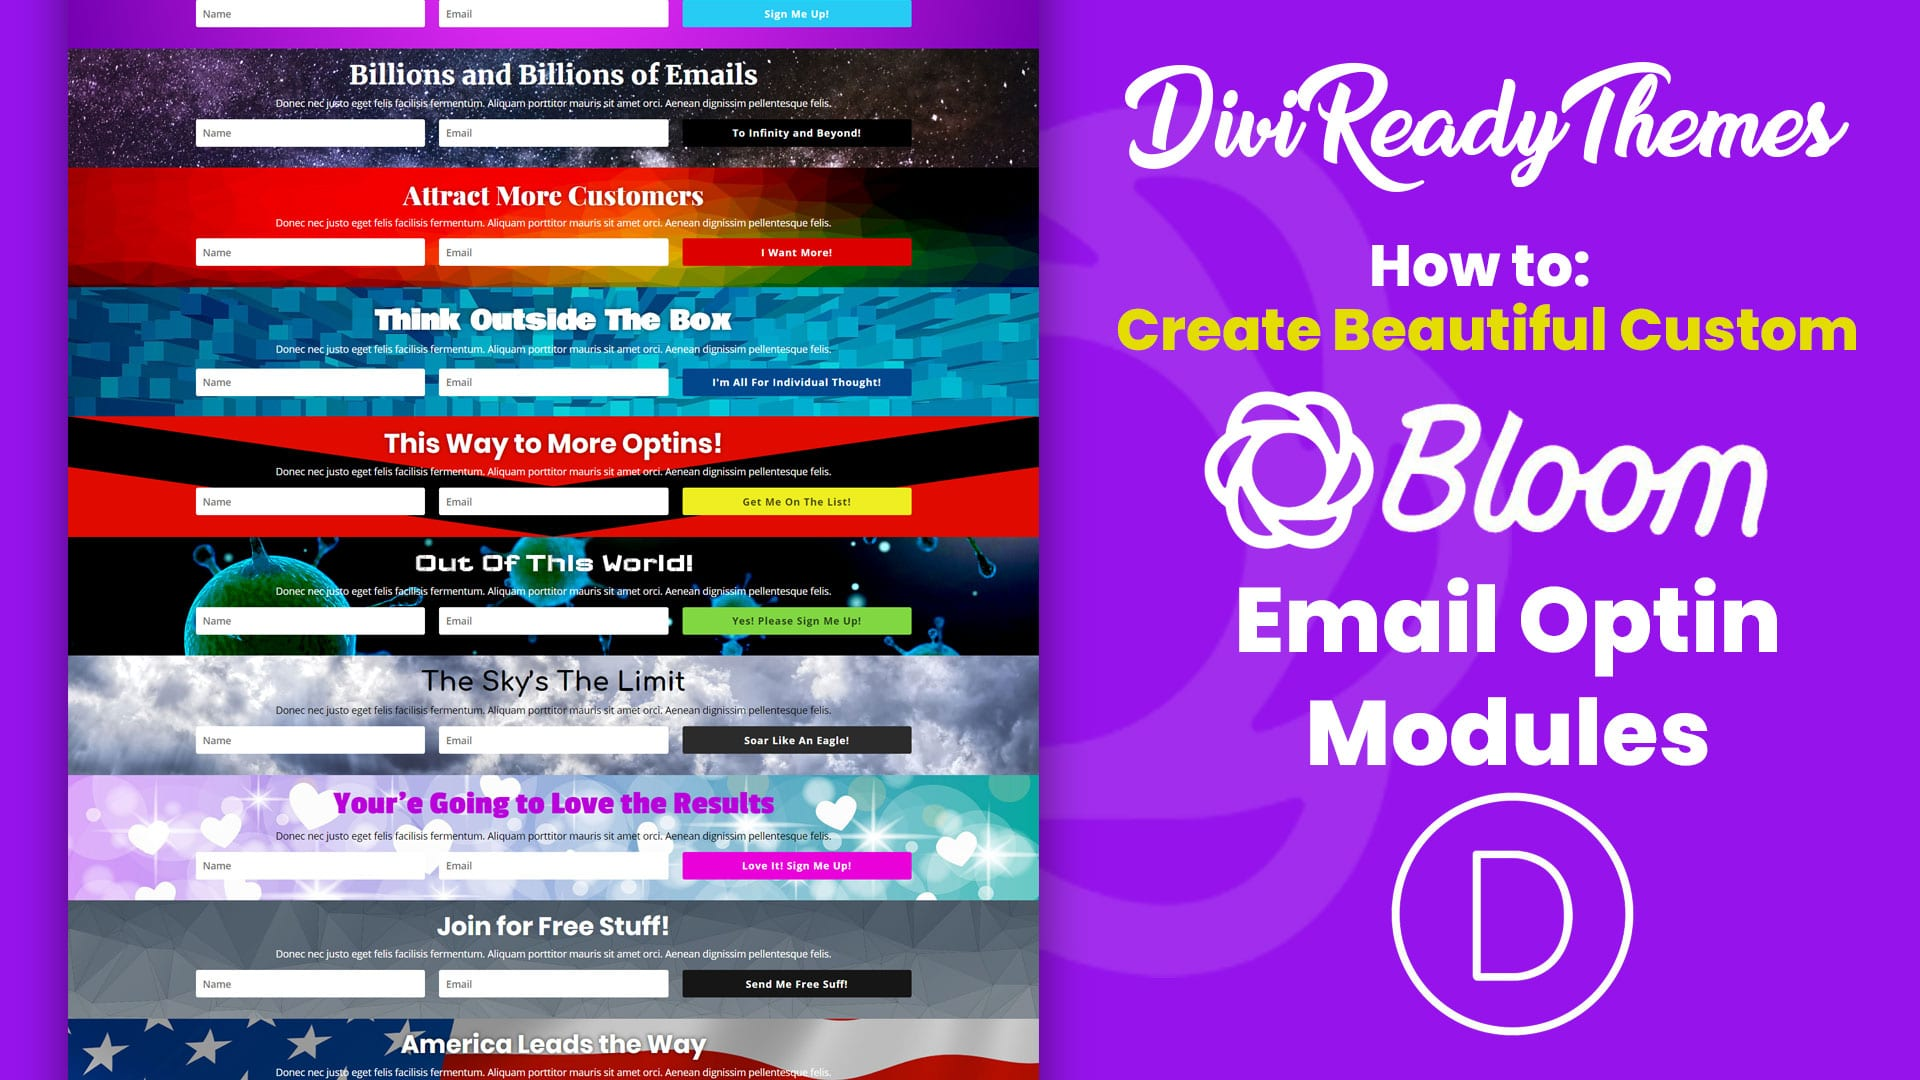 How to Create Full-Width Bloom Email Optin Modules in Divi